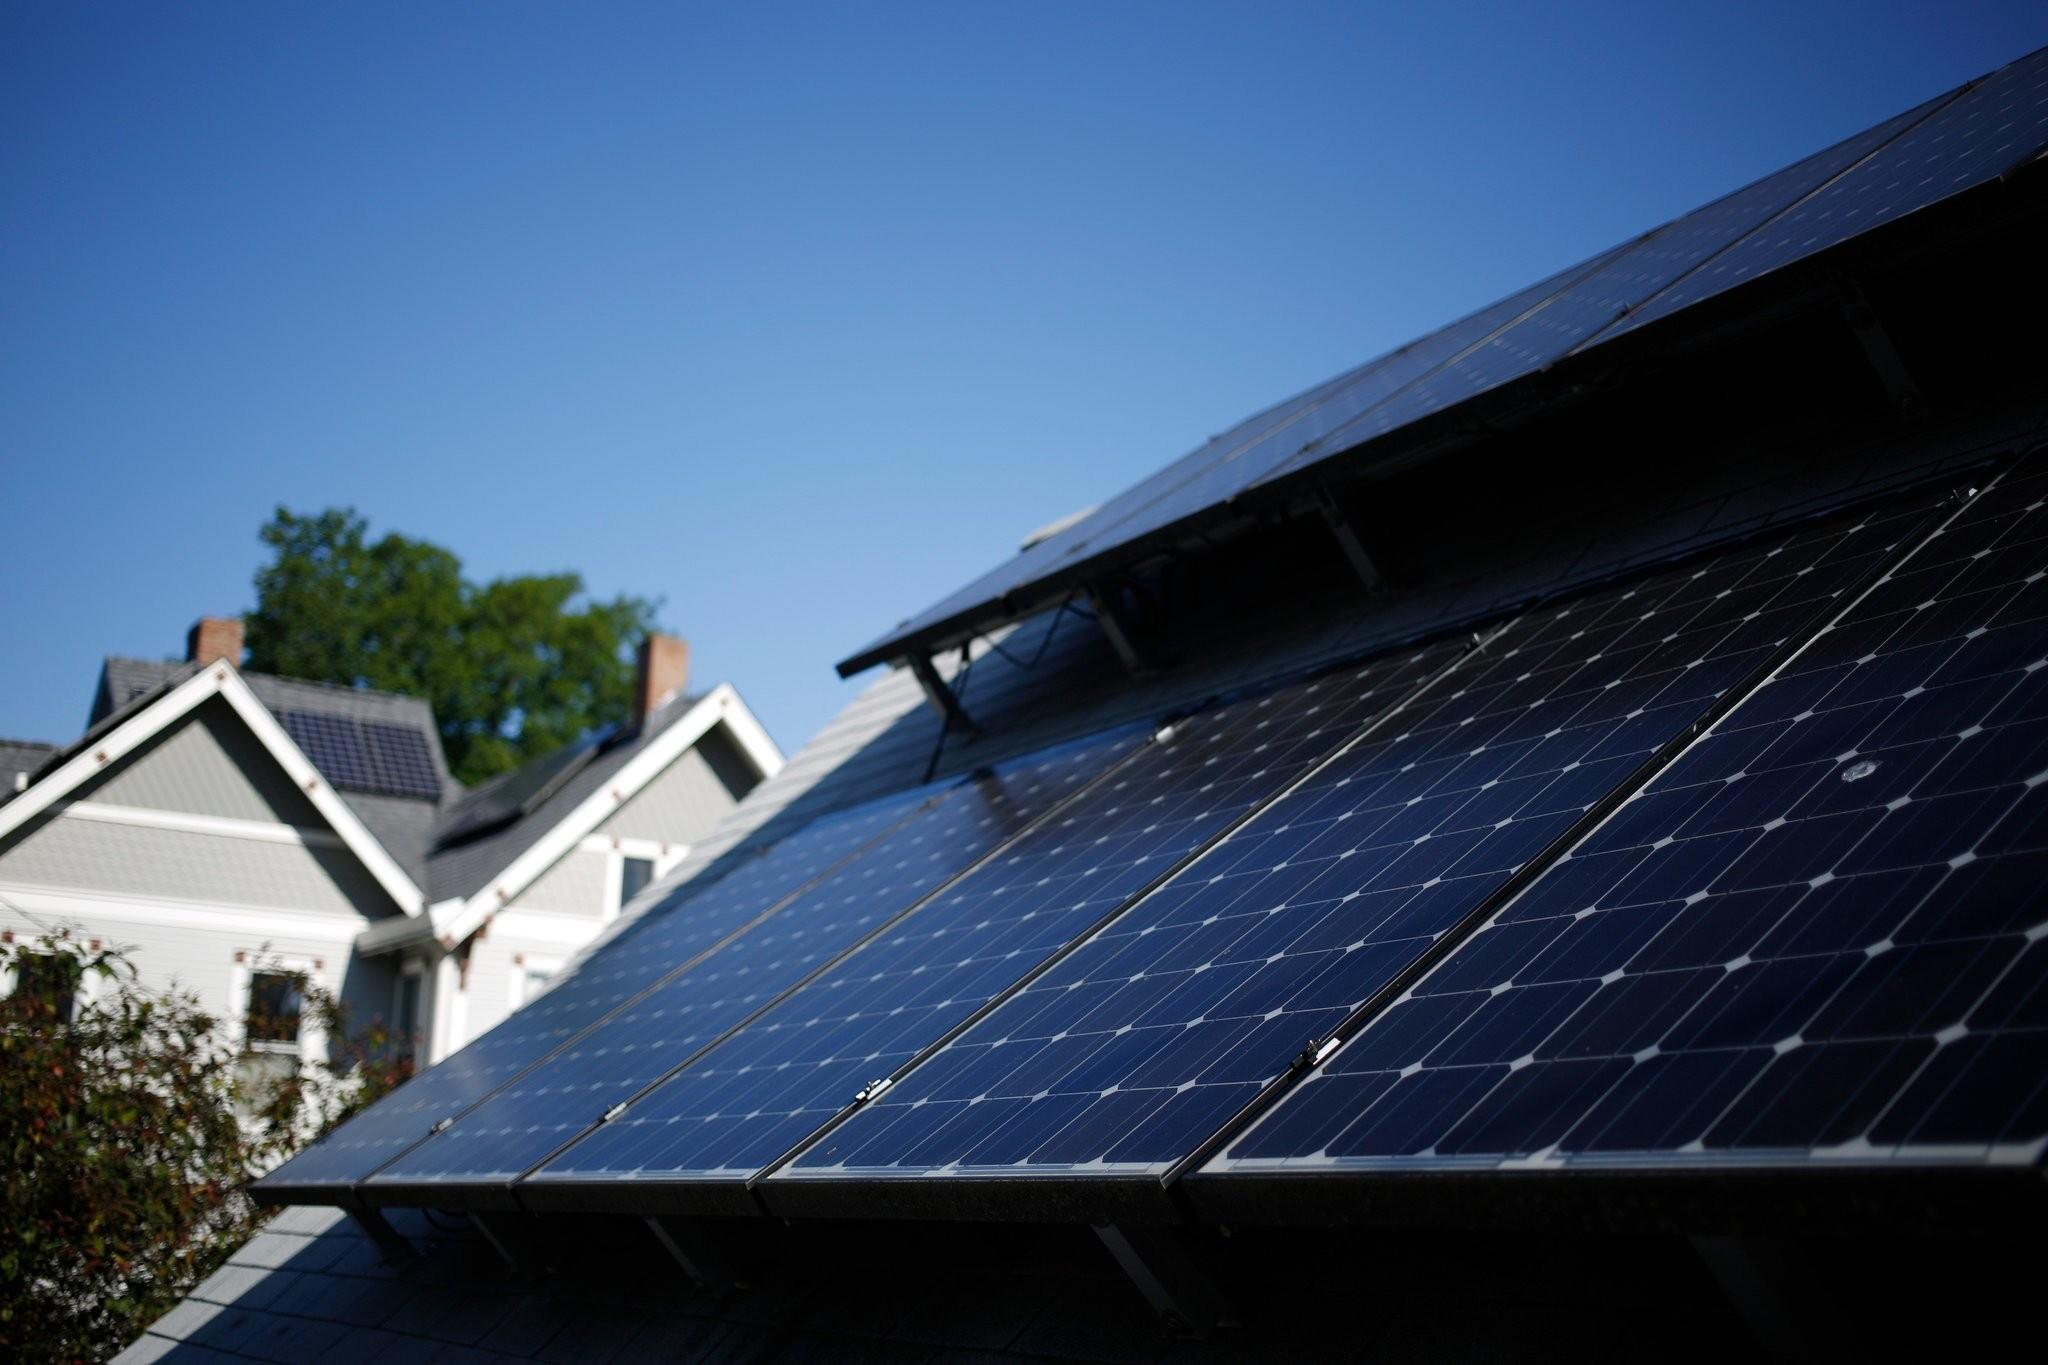 Rooftop Solar Dims Under Pressure Utility Lobbyists